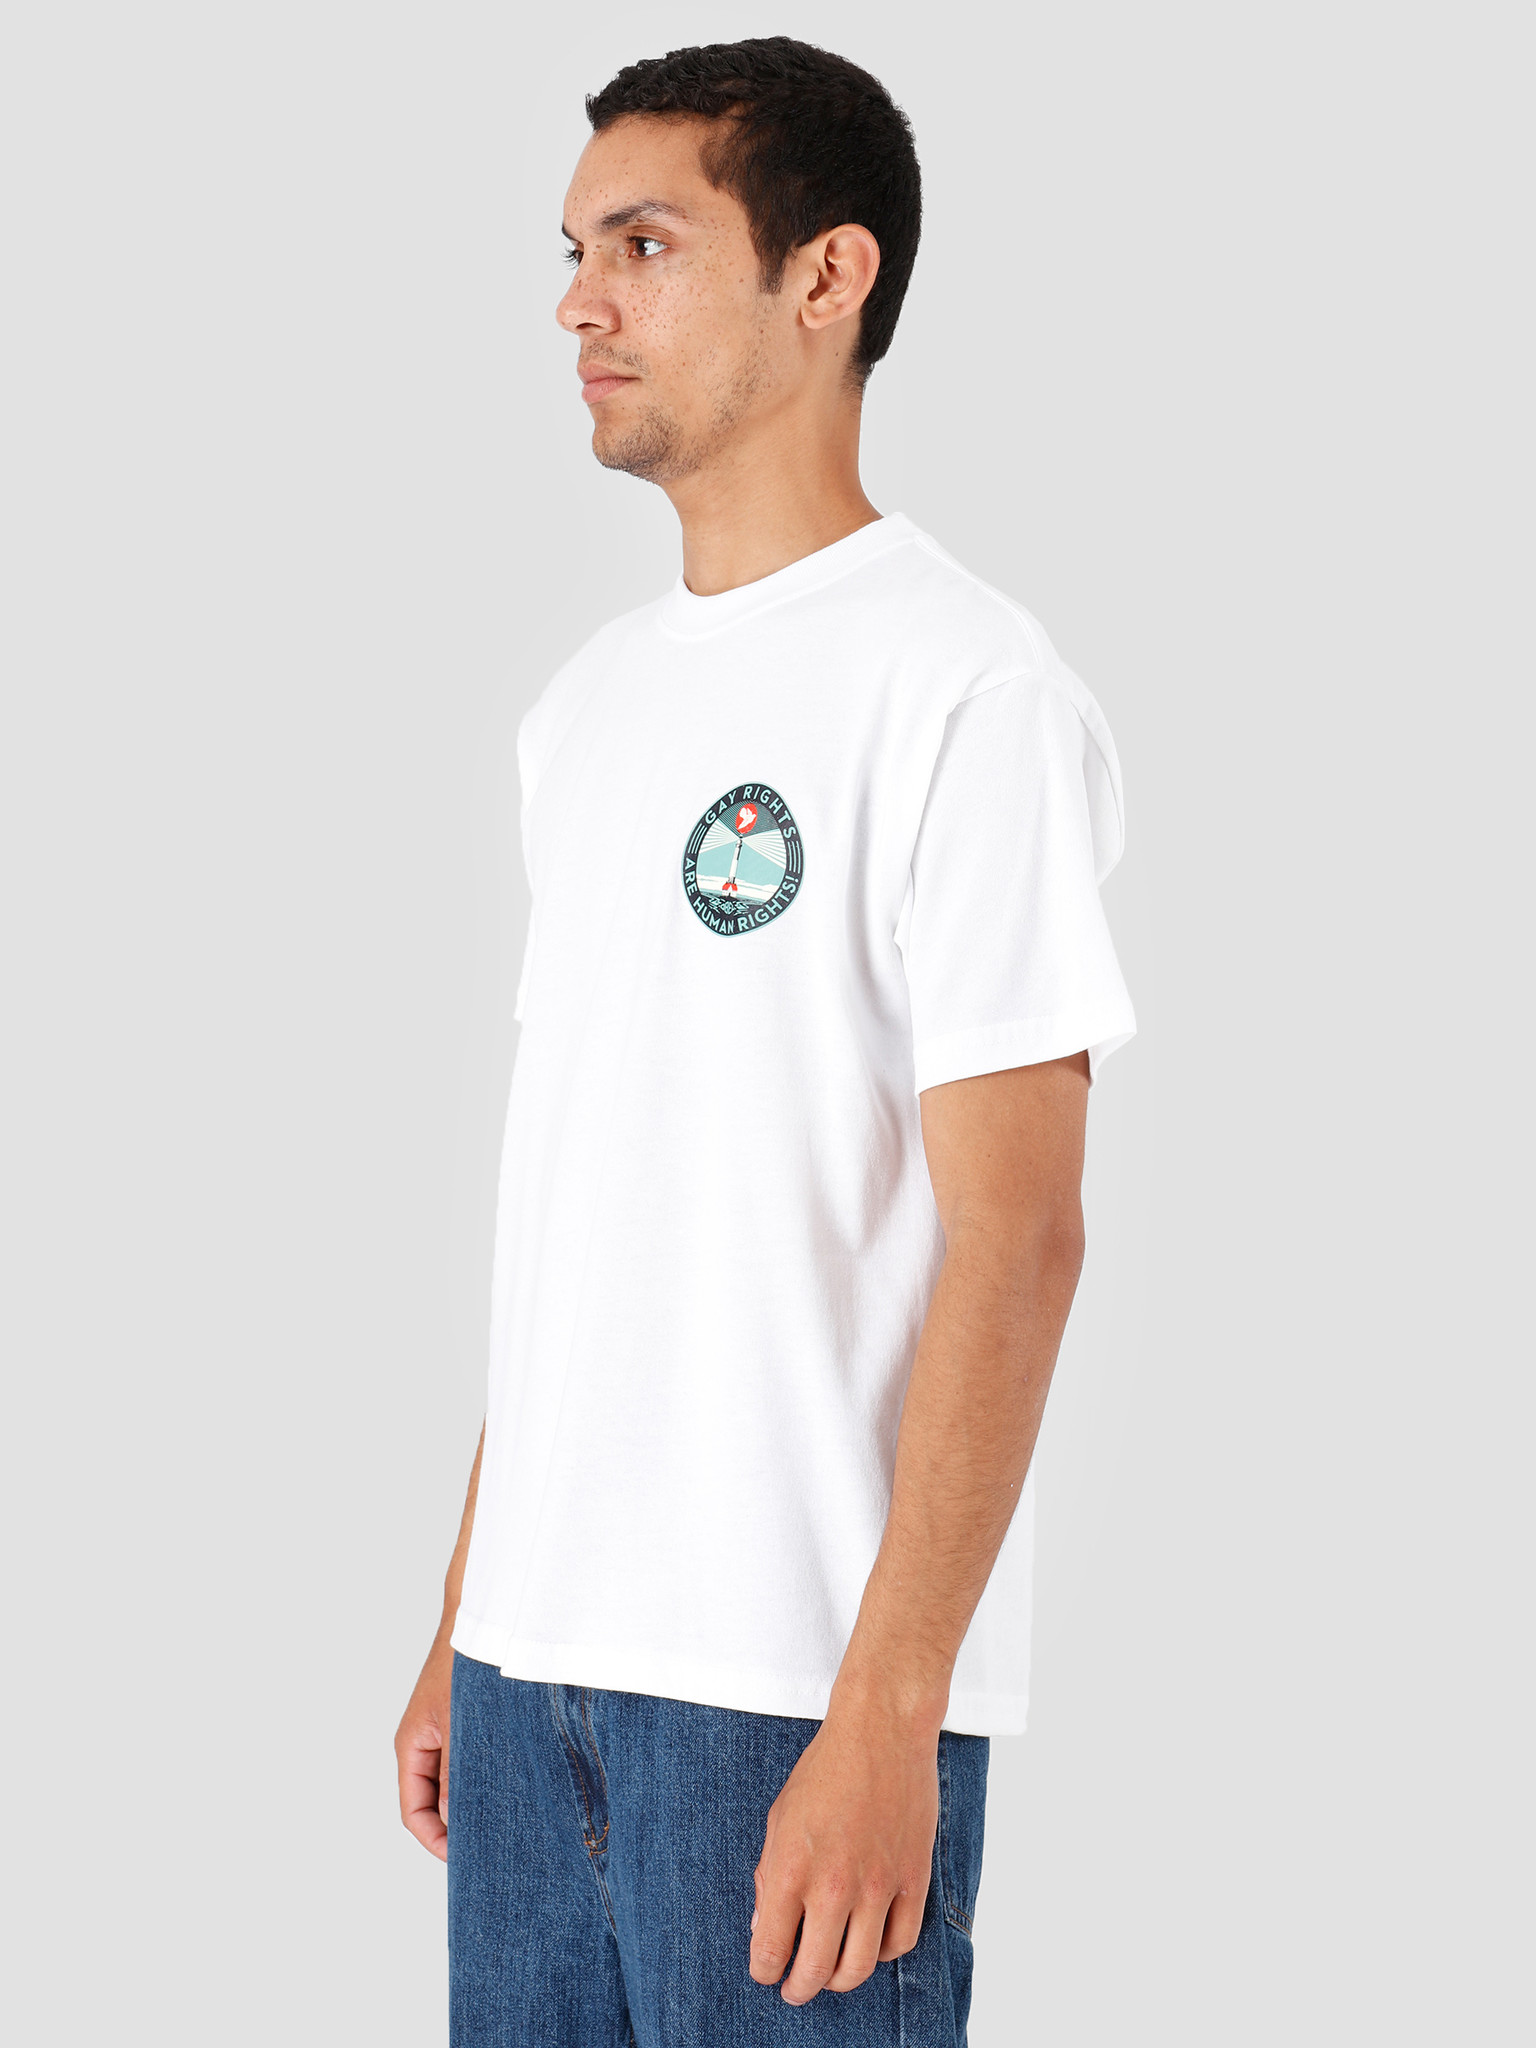 Obey Obey Fire Island T-Shirt White 167292167-WHT